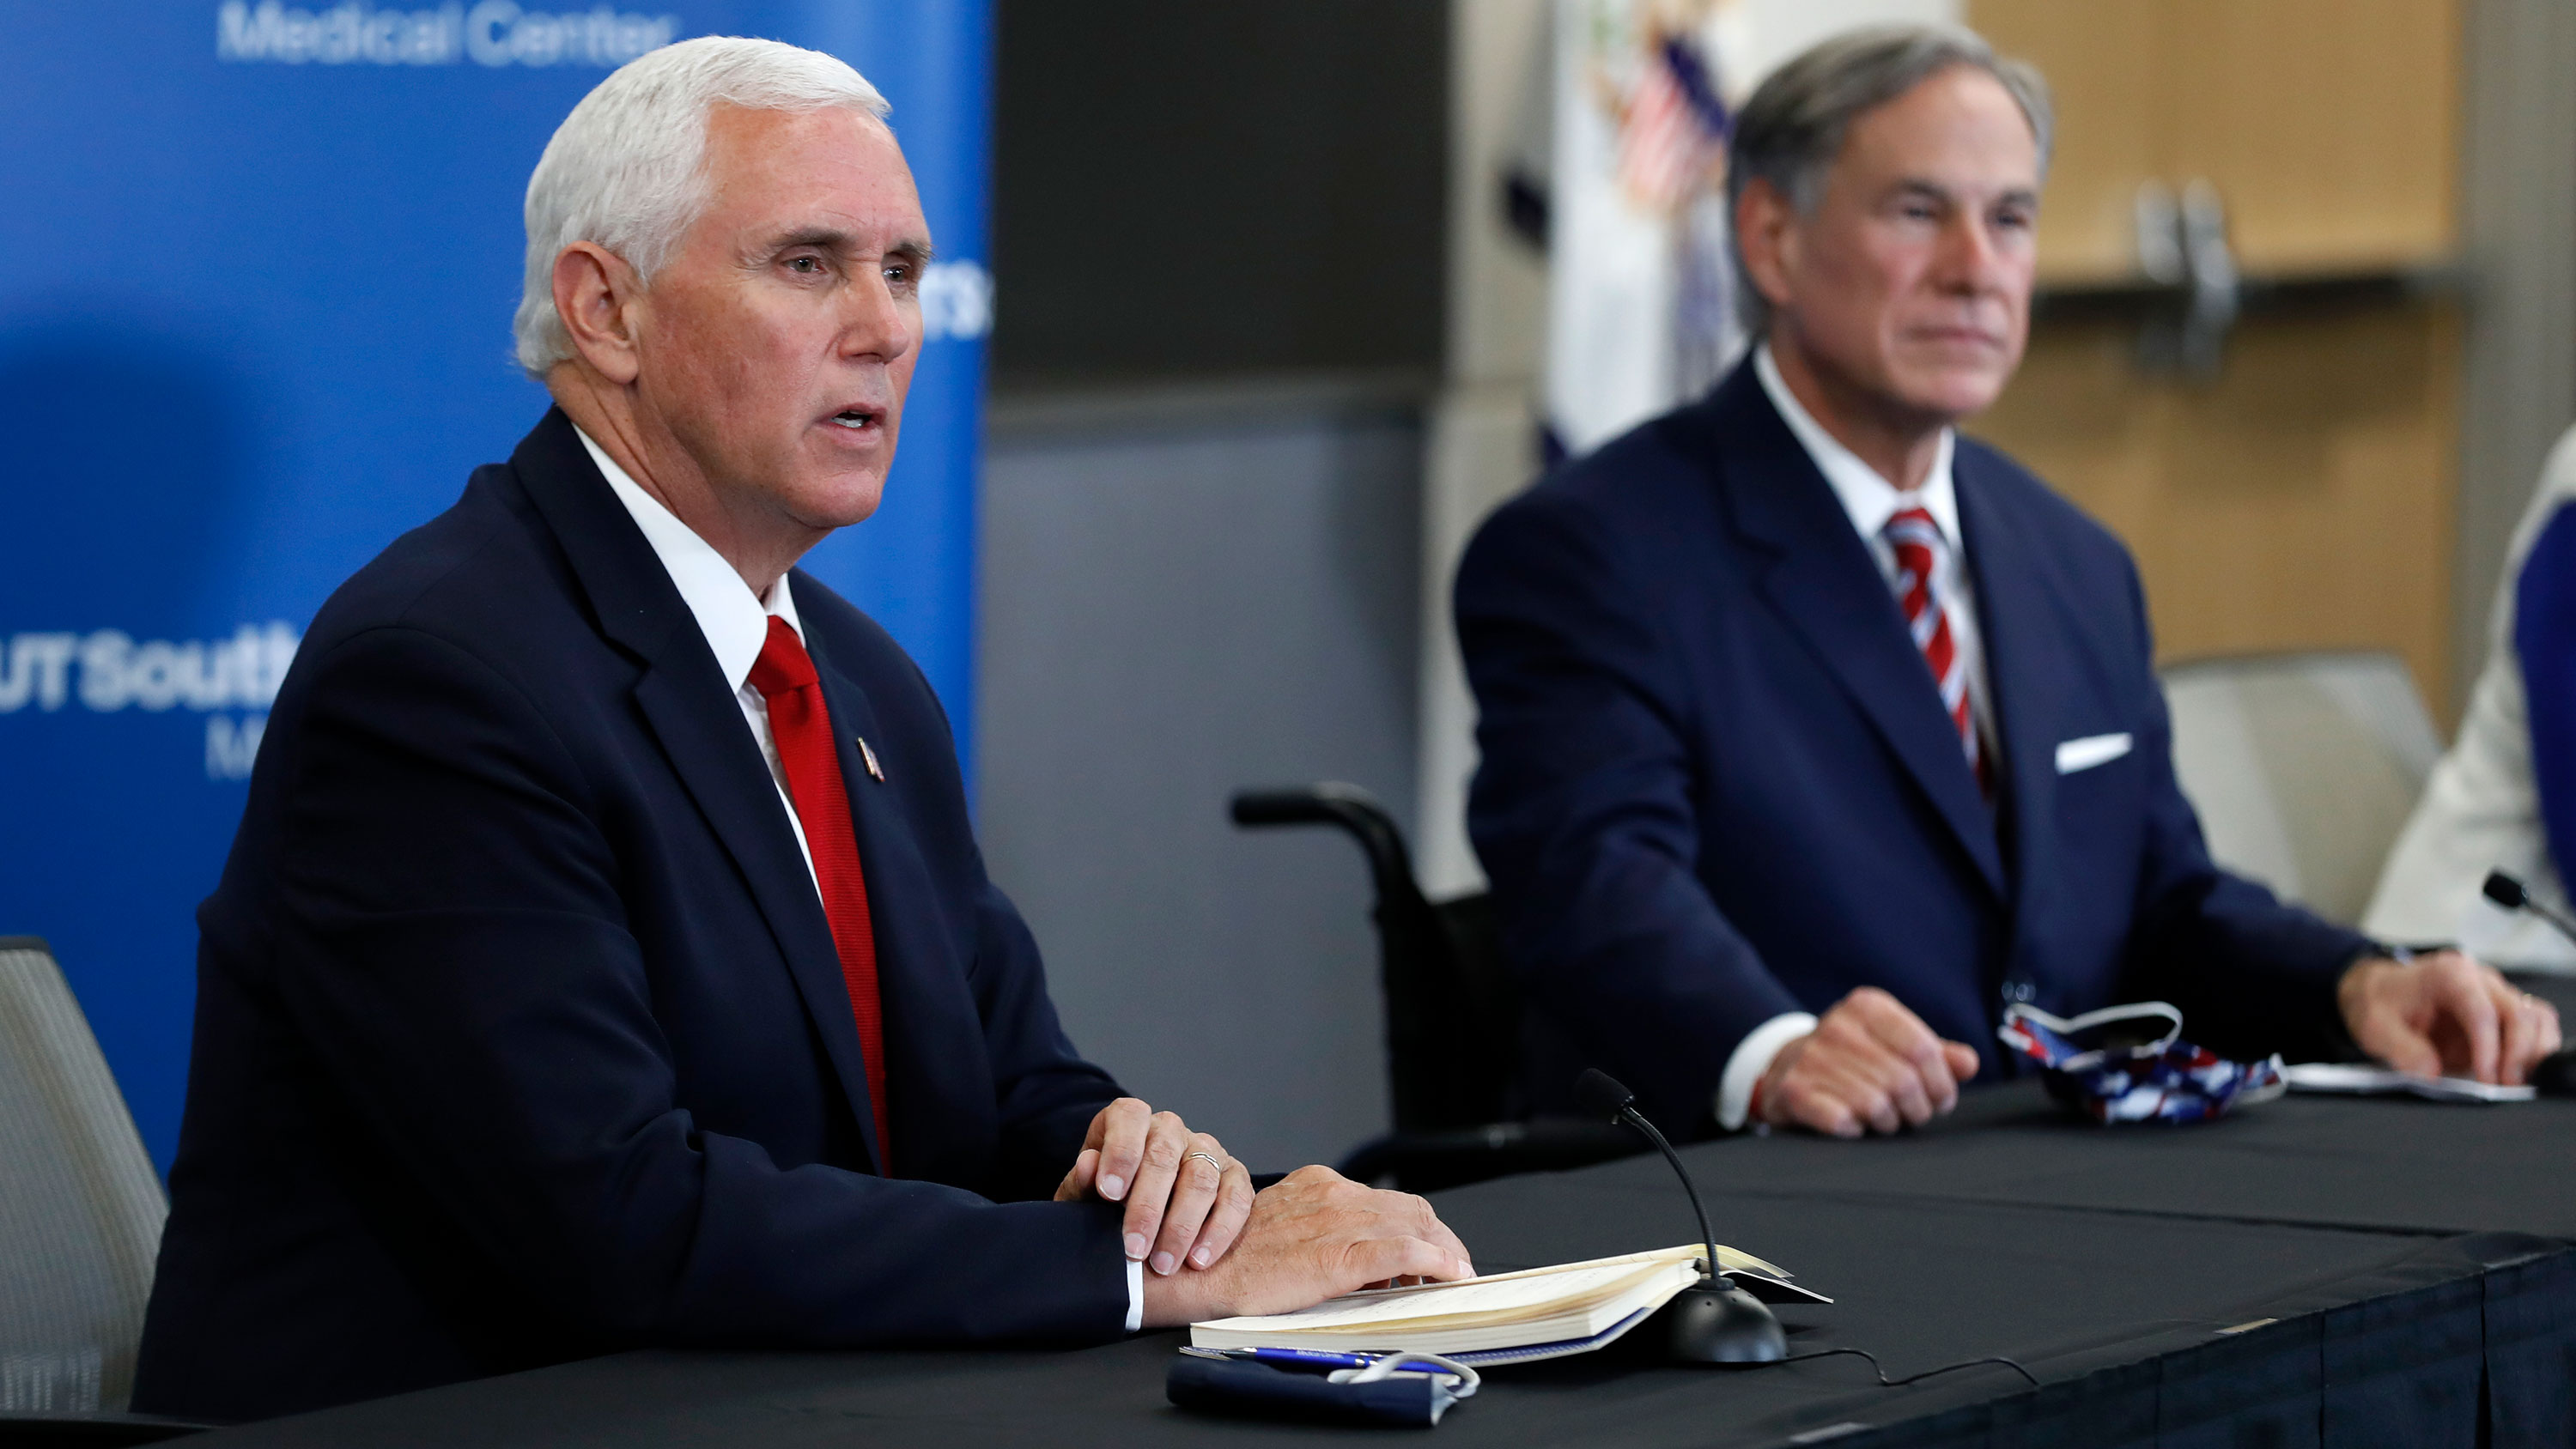 US Vice President Mike Pence speaks during a news conference alongside Gov. Greg Abbott  at the University of Texas Southwestern Medical Center West Campus on June 28 in Dallas, Texas.